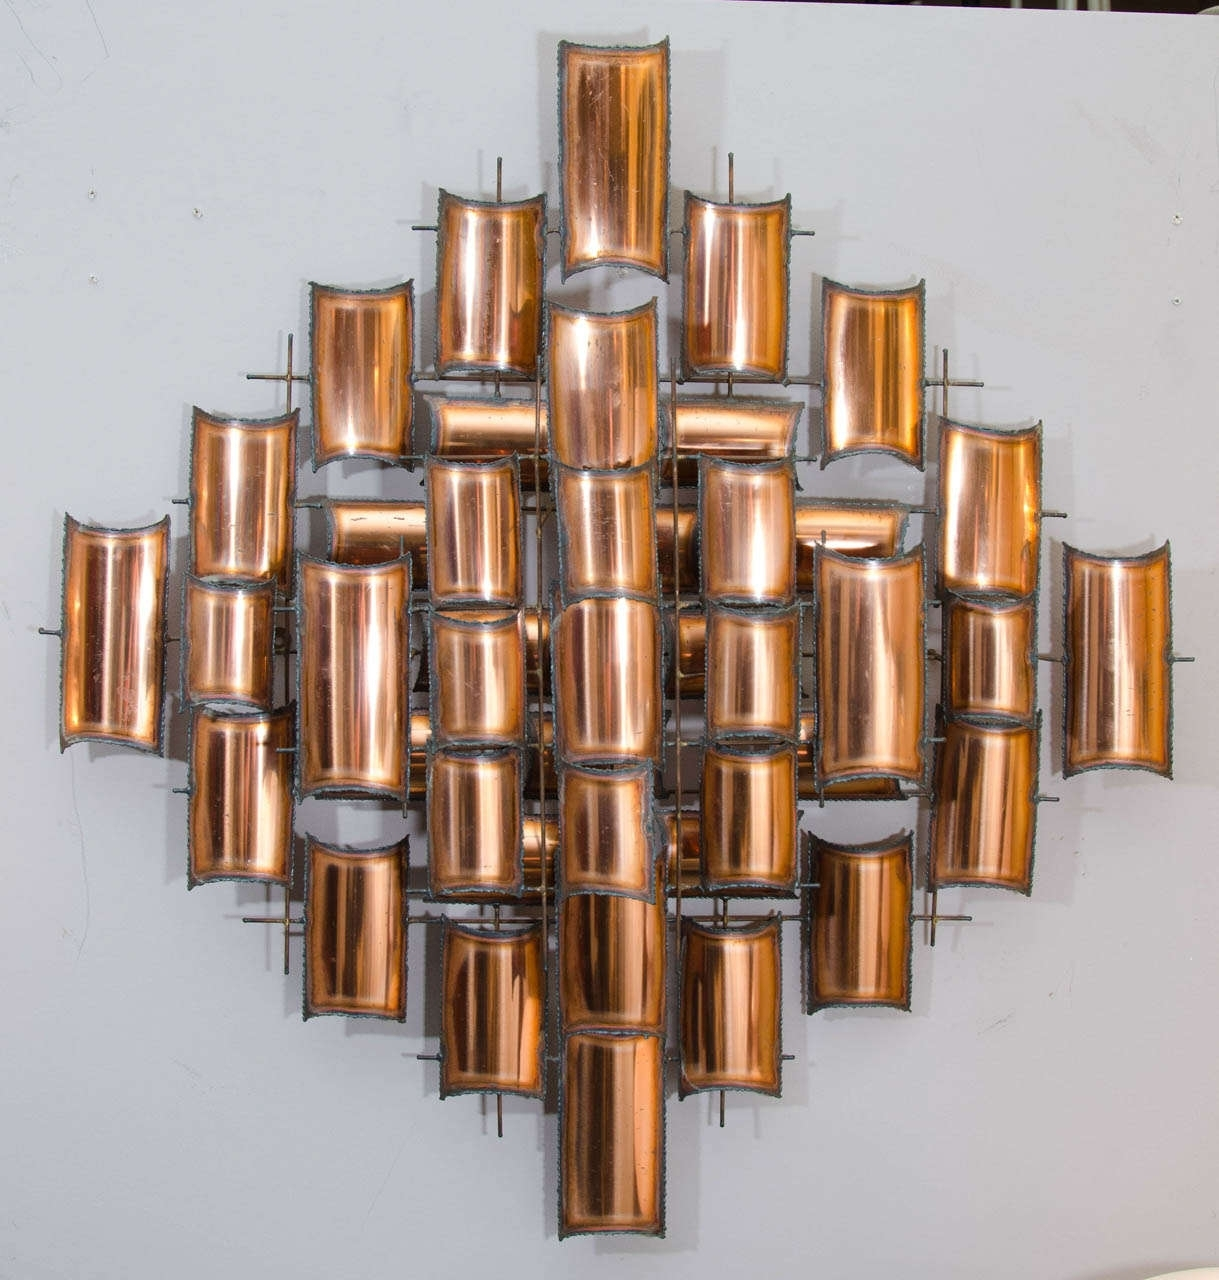 Wall Art Designs: Copper Wall Art Home Decorate Wall Art Abstract With Regard To Most Recently Released Abstract Outdoor Wall Art (View 14 of 20)